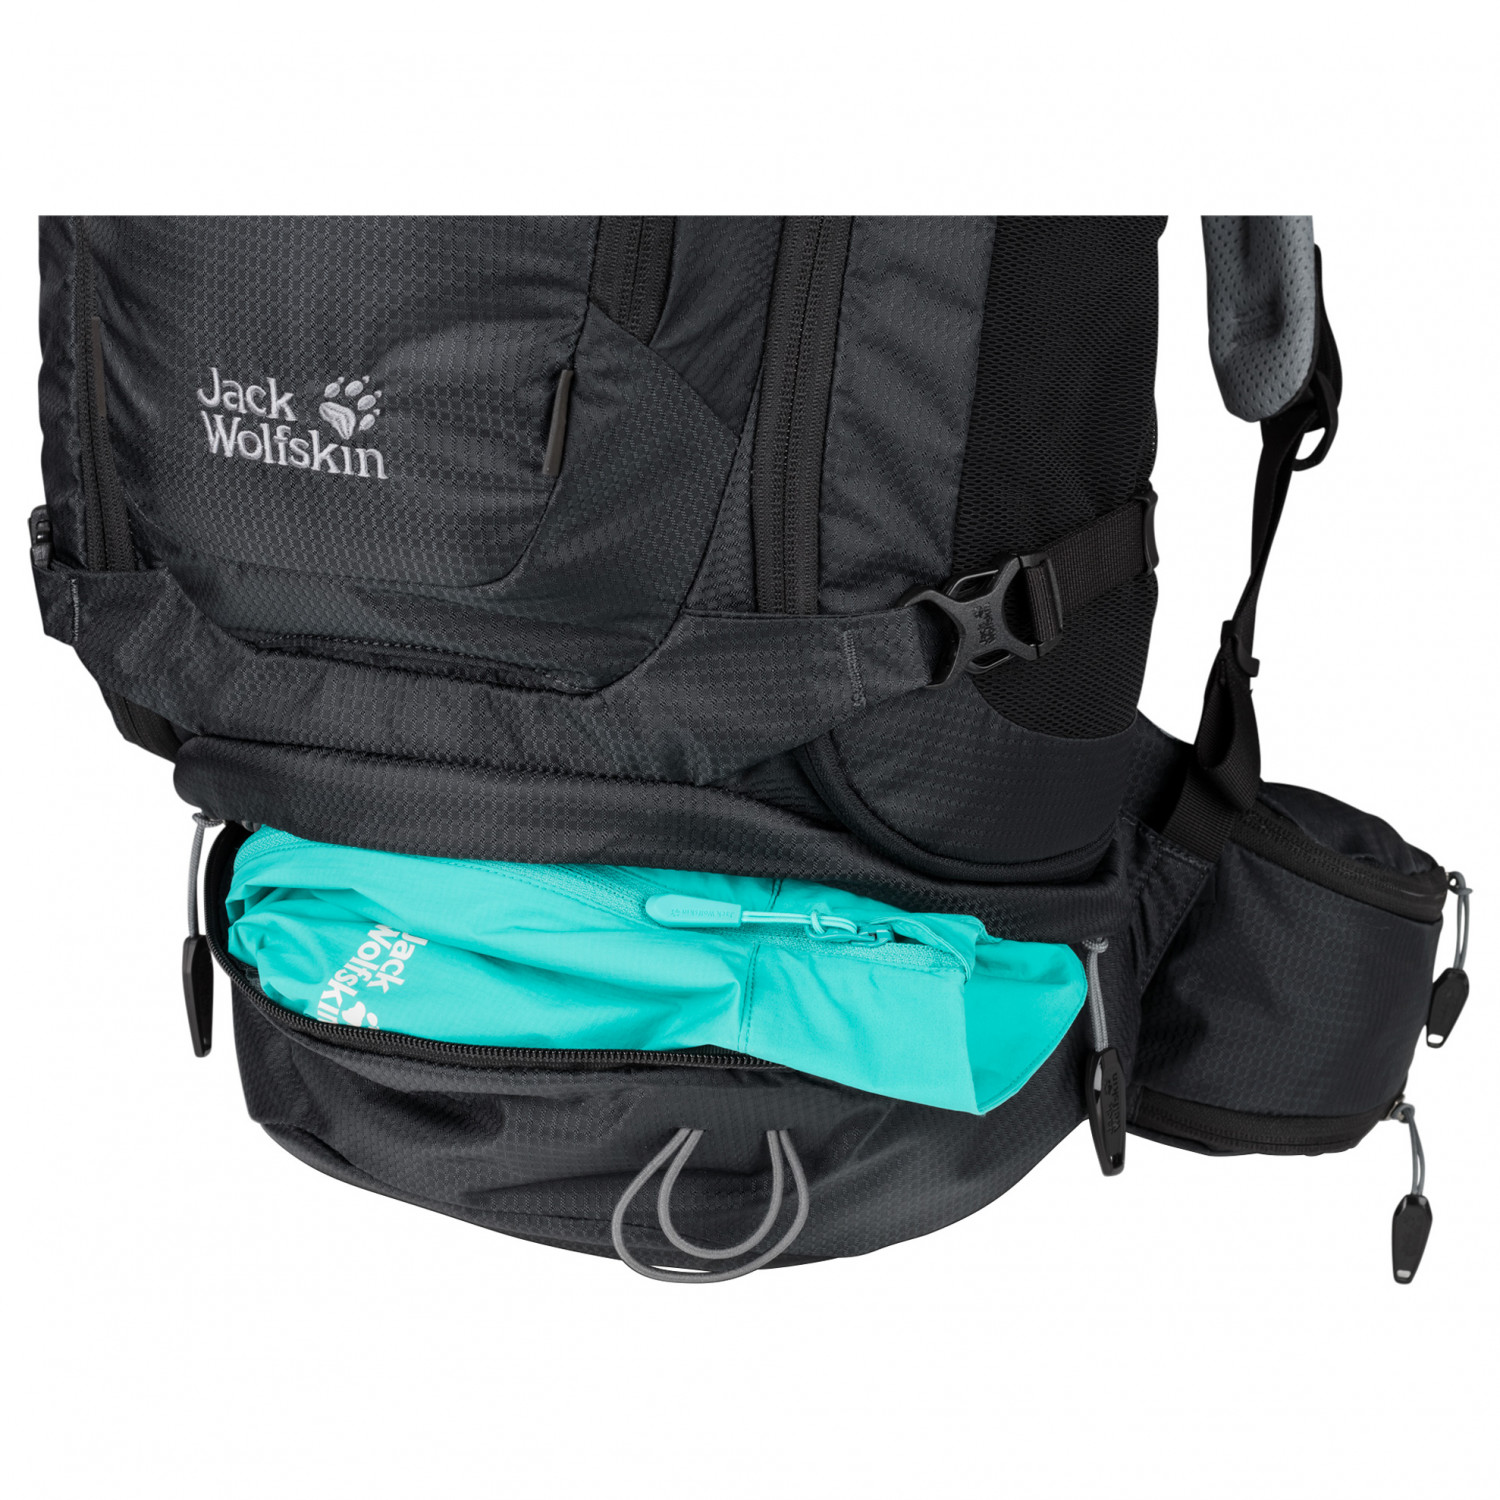 0a11d5ad7b Jack Wolfskin Satellite Photo Pack 24 - Camera Backpack | Free UK ...